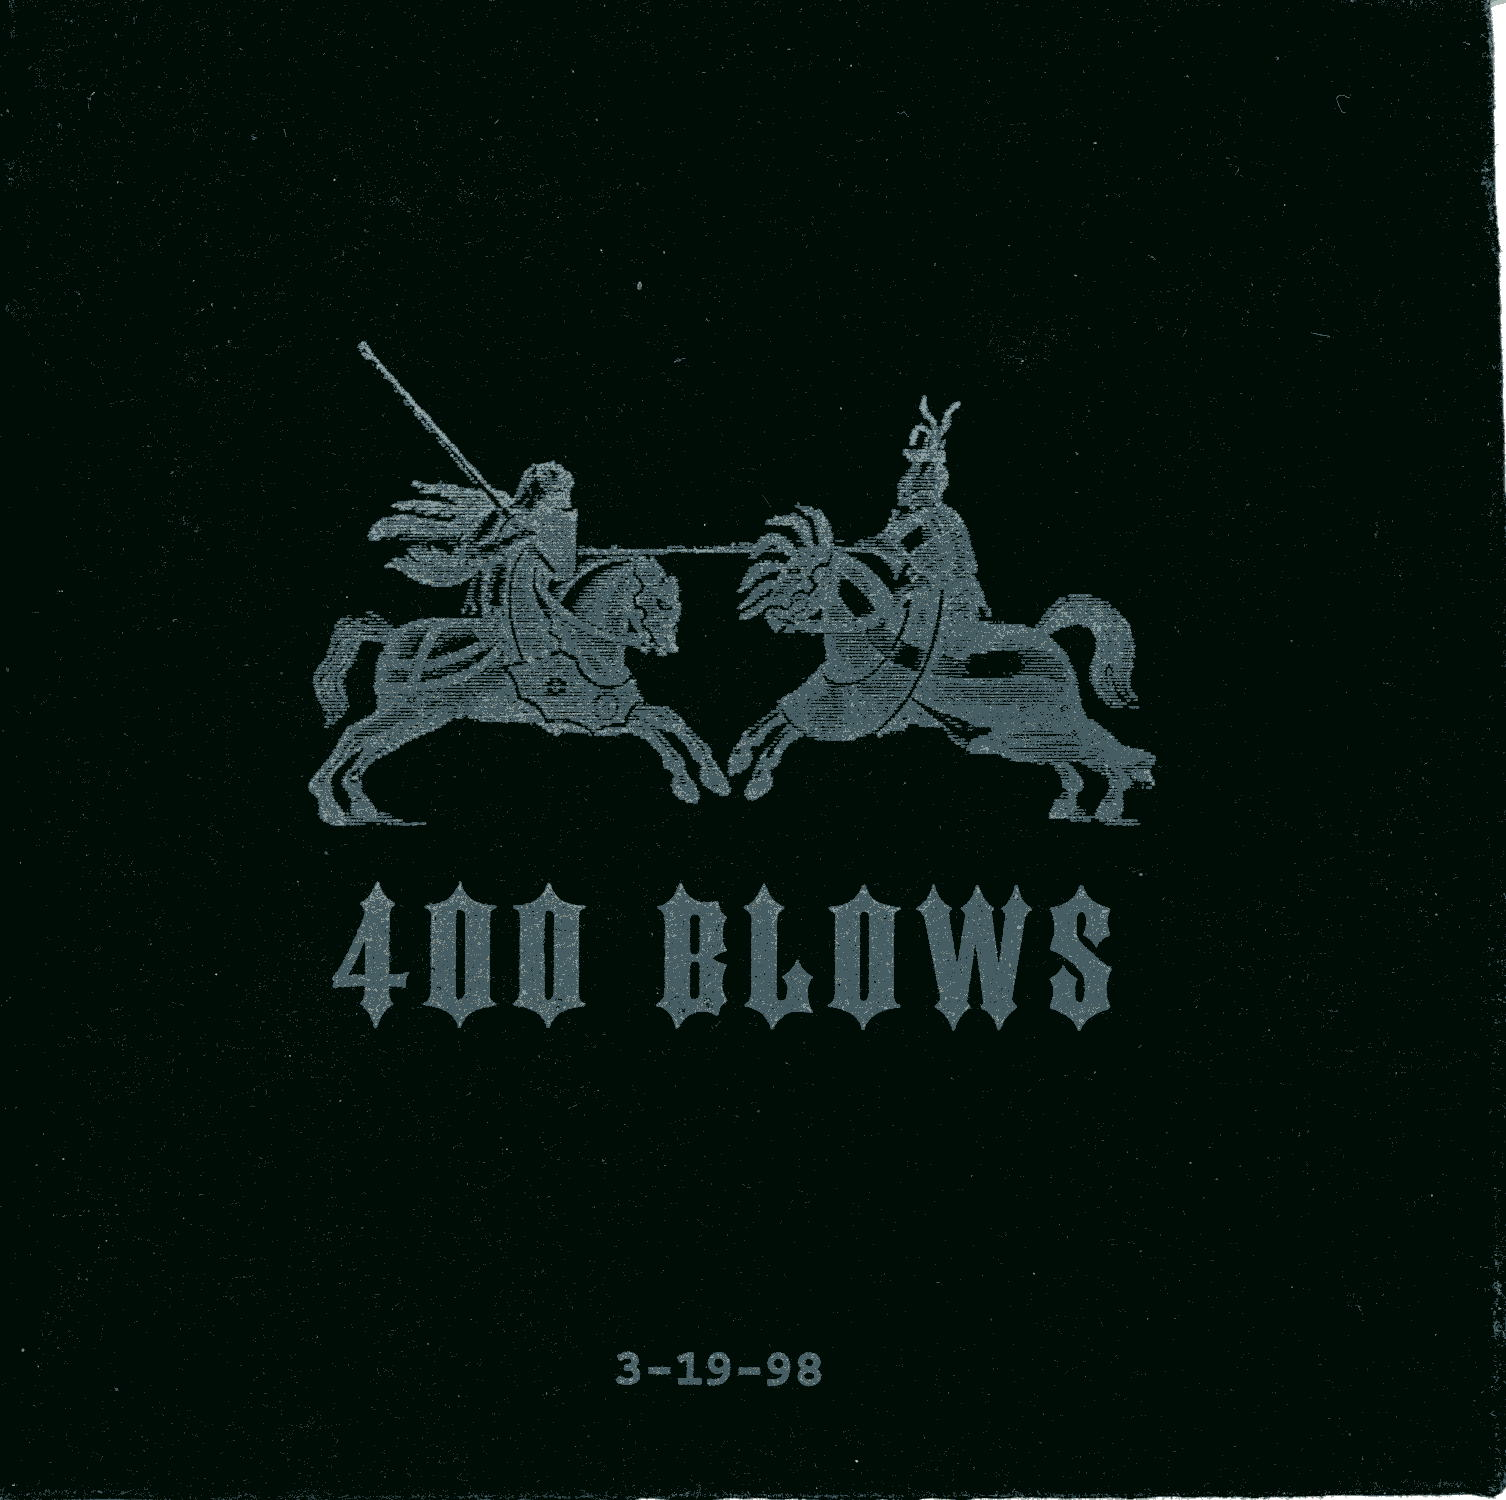 Mr Phreek's Anokist Emporium: 400 Blows